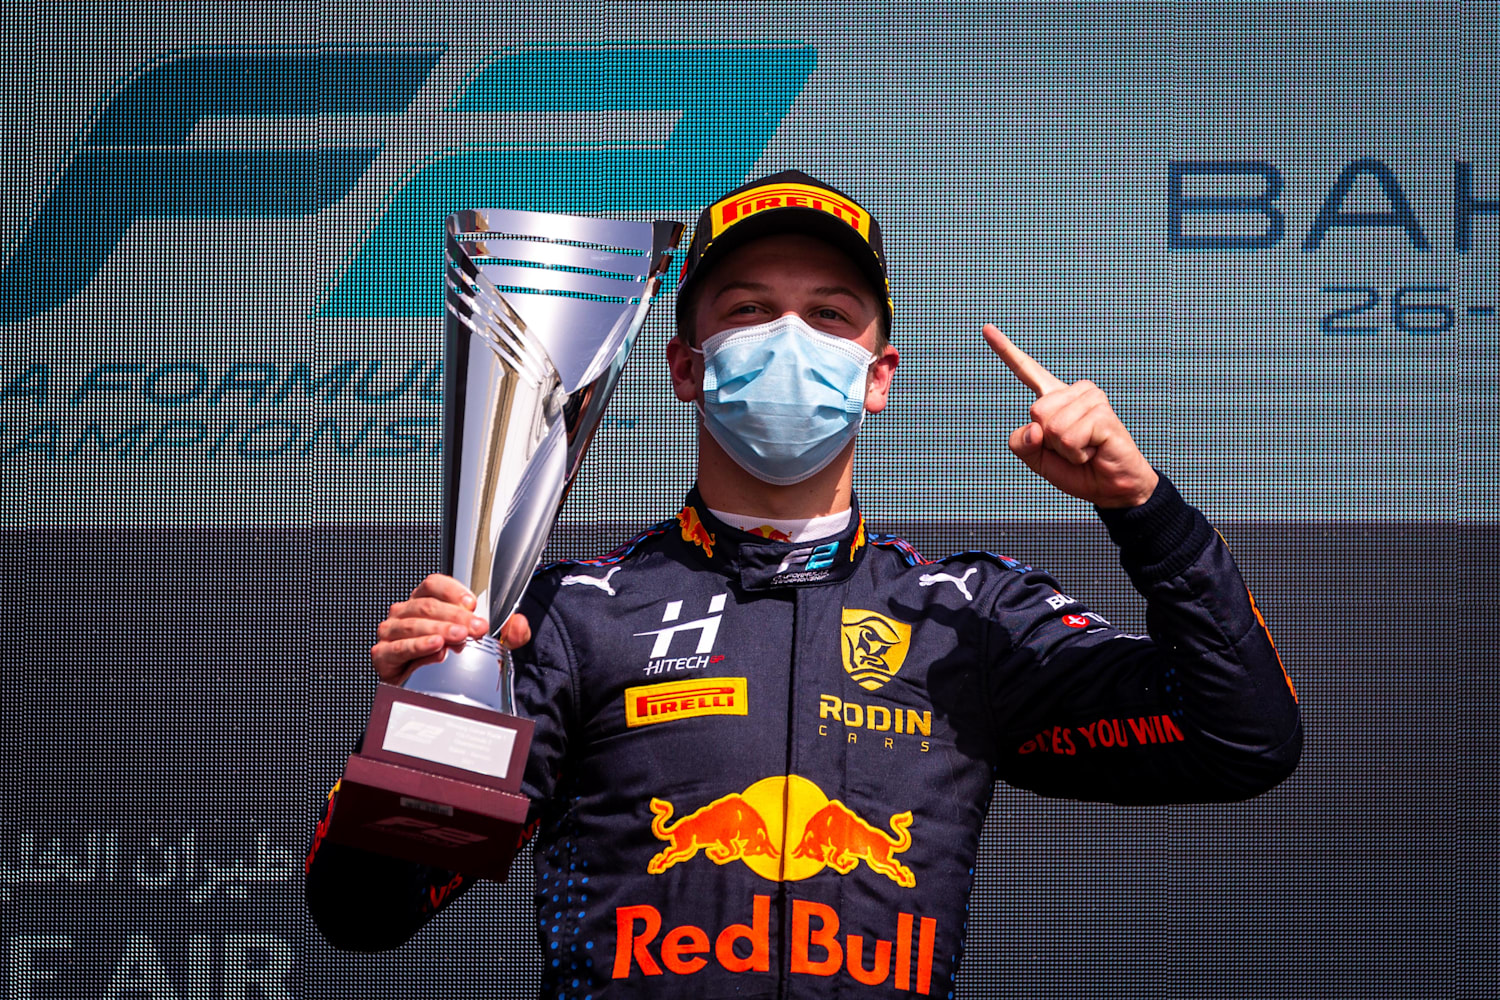 Lawson wins in Bahrain F2 – 2nd in chase, Daruvala 3rd